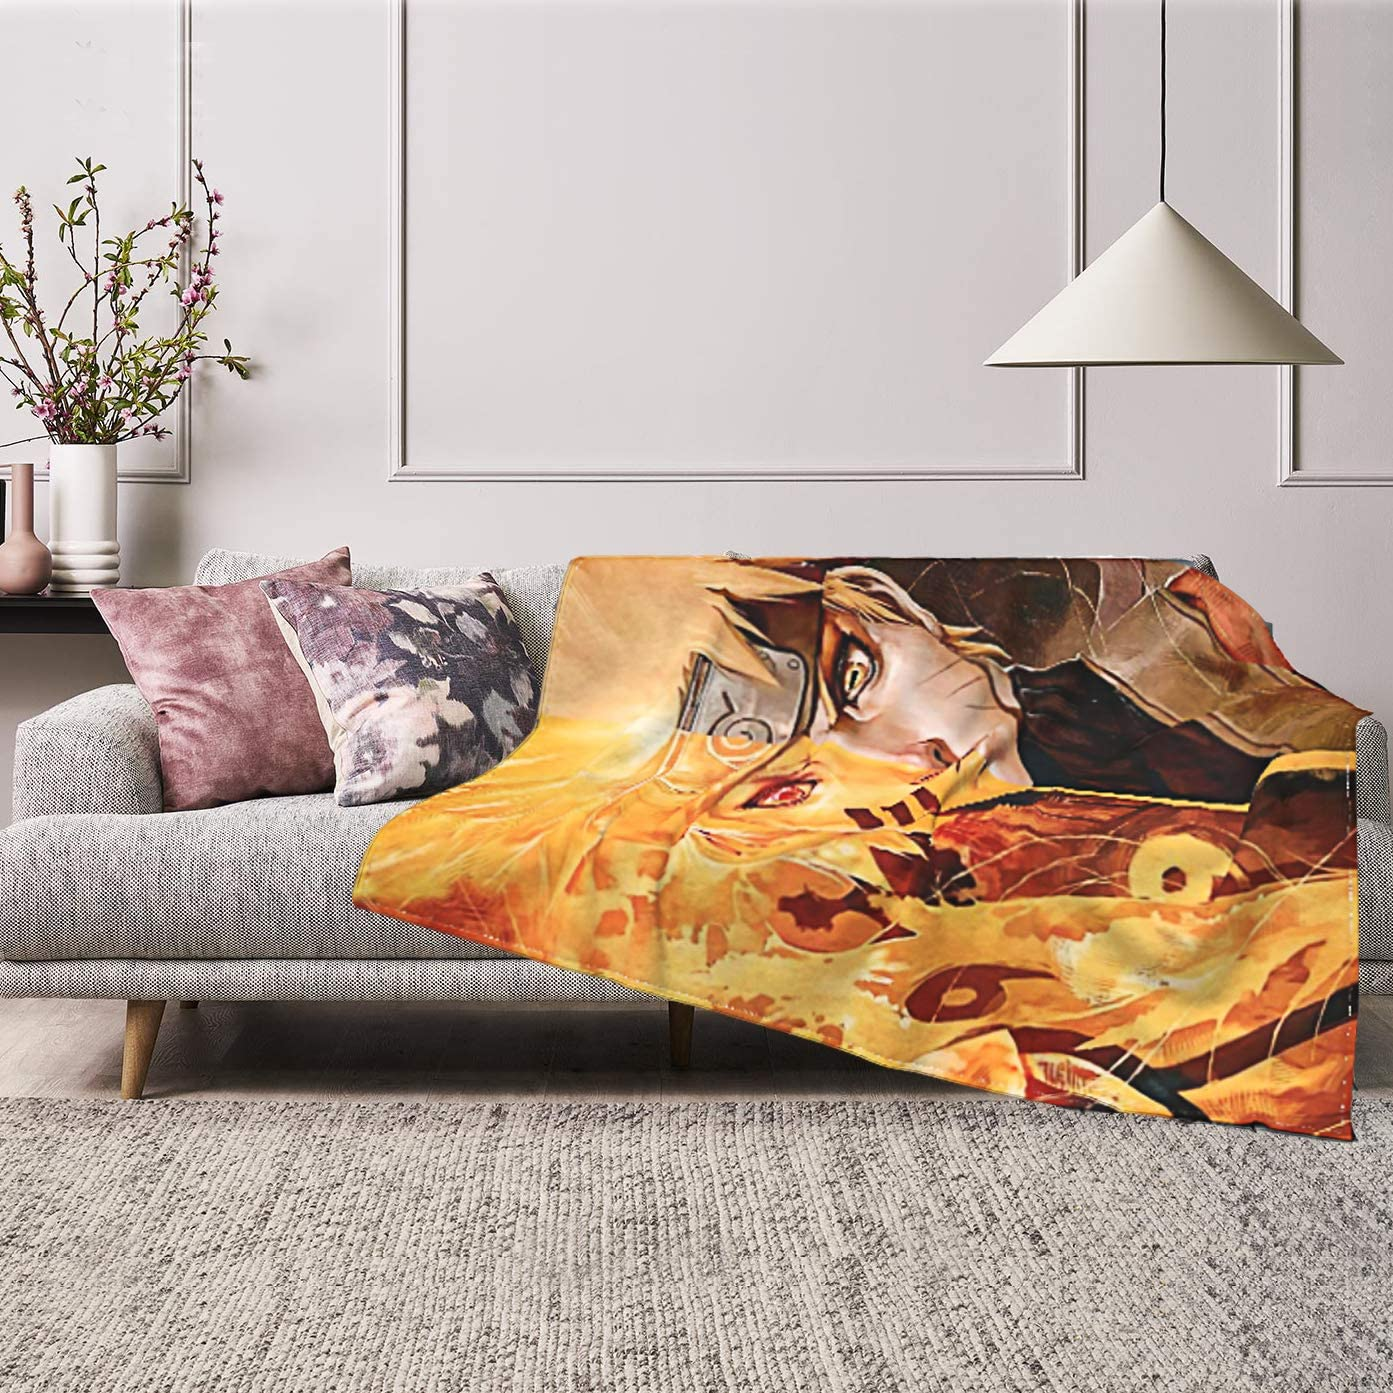 Anime Na-ruto Throw Blanket Flannel Fleece Blankets Ultra-Soft Plush Warm Cozy Lightweight Comfort Fluffy Comfy Decorative for Couch Bed Sofa Living Room Car Home Office